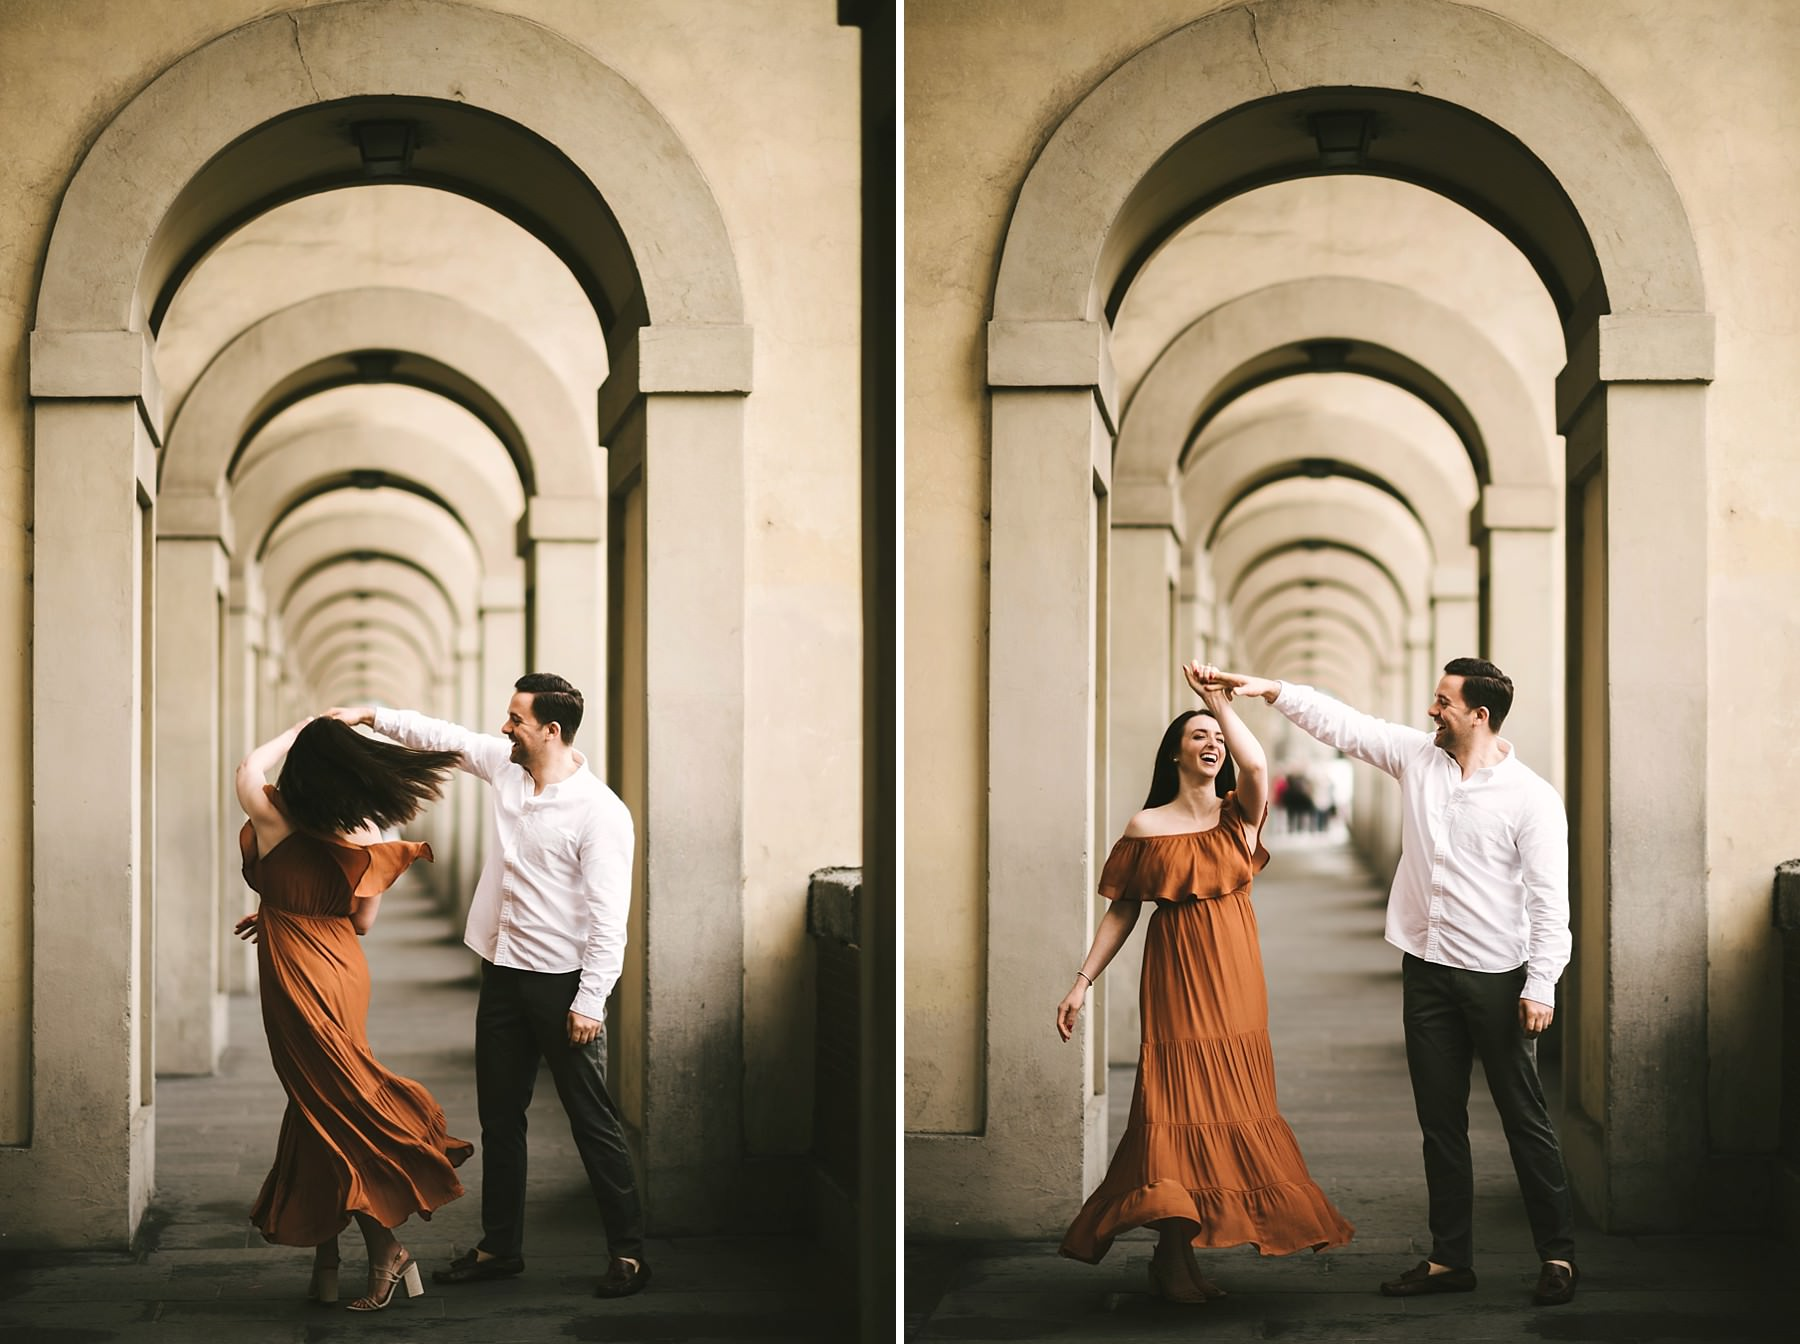 Engagement photo shoot in Florence at sunrise time with no tourist around the city. Most intimate photo shoot experience